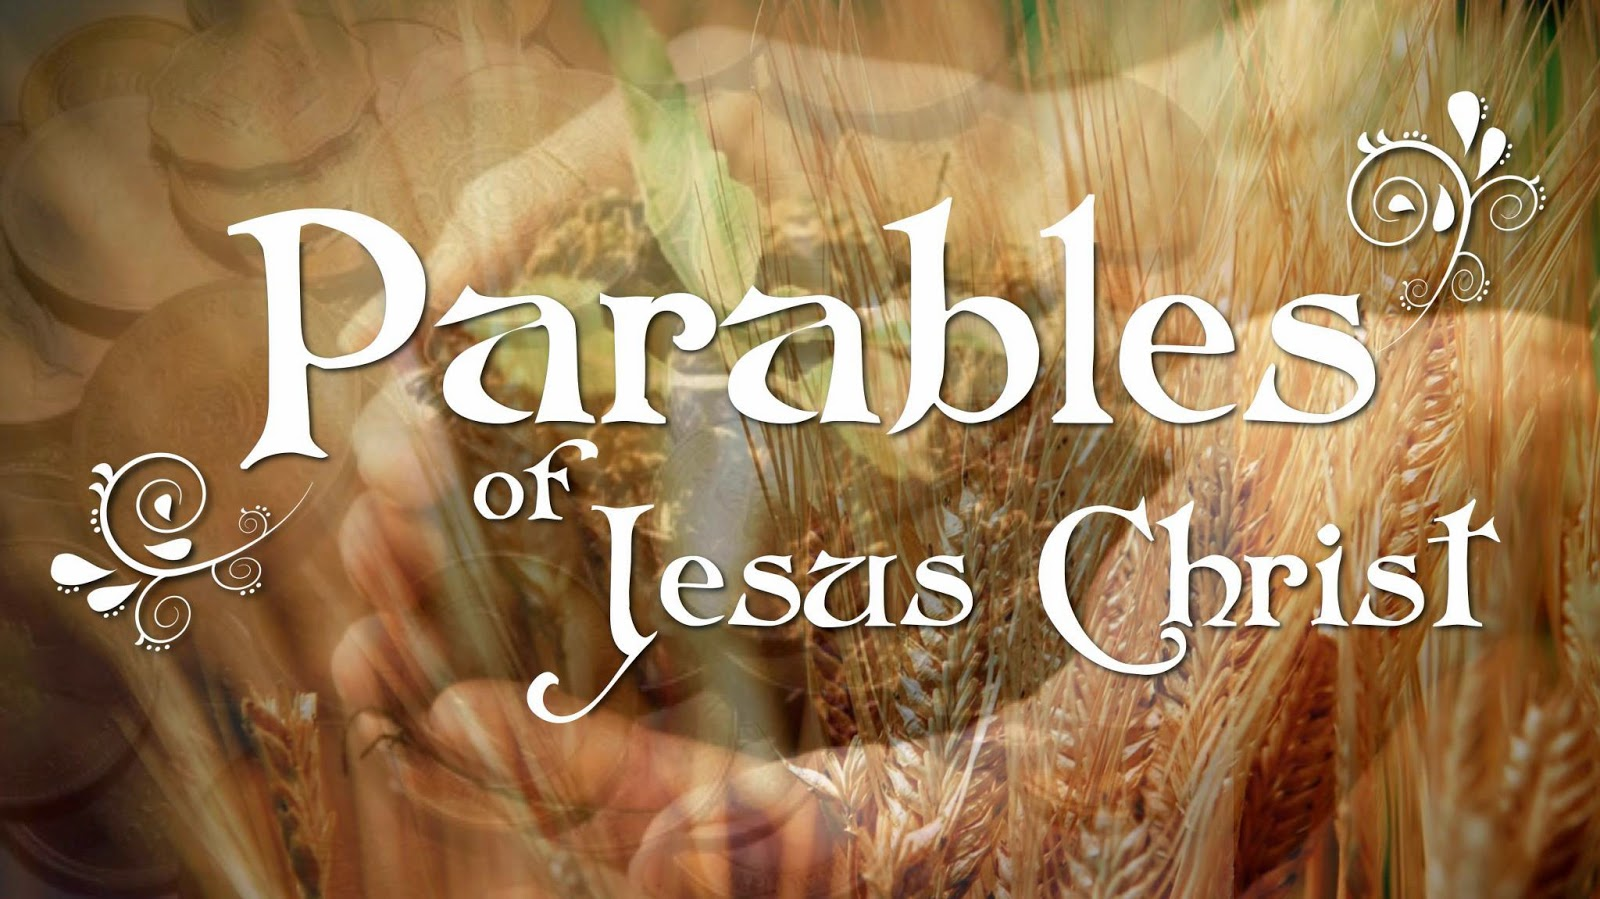 Parables of the second coming of the Lord Jesus Christ